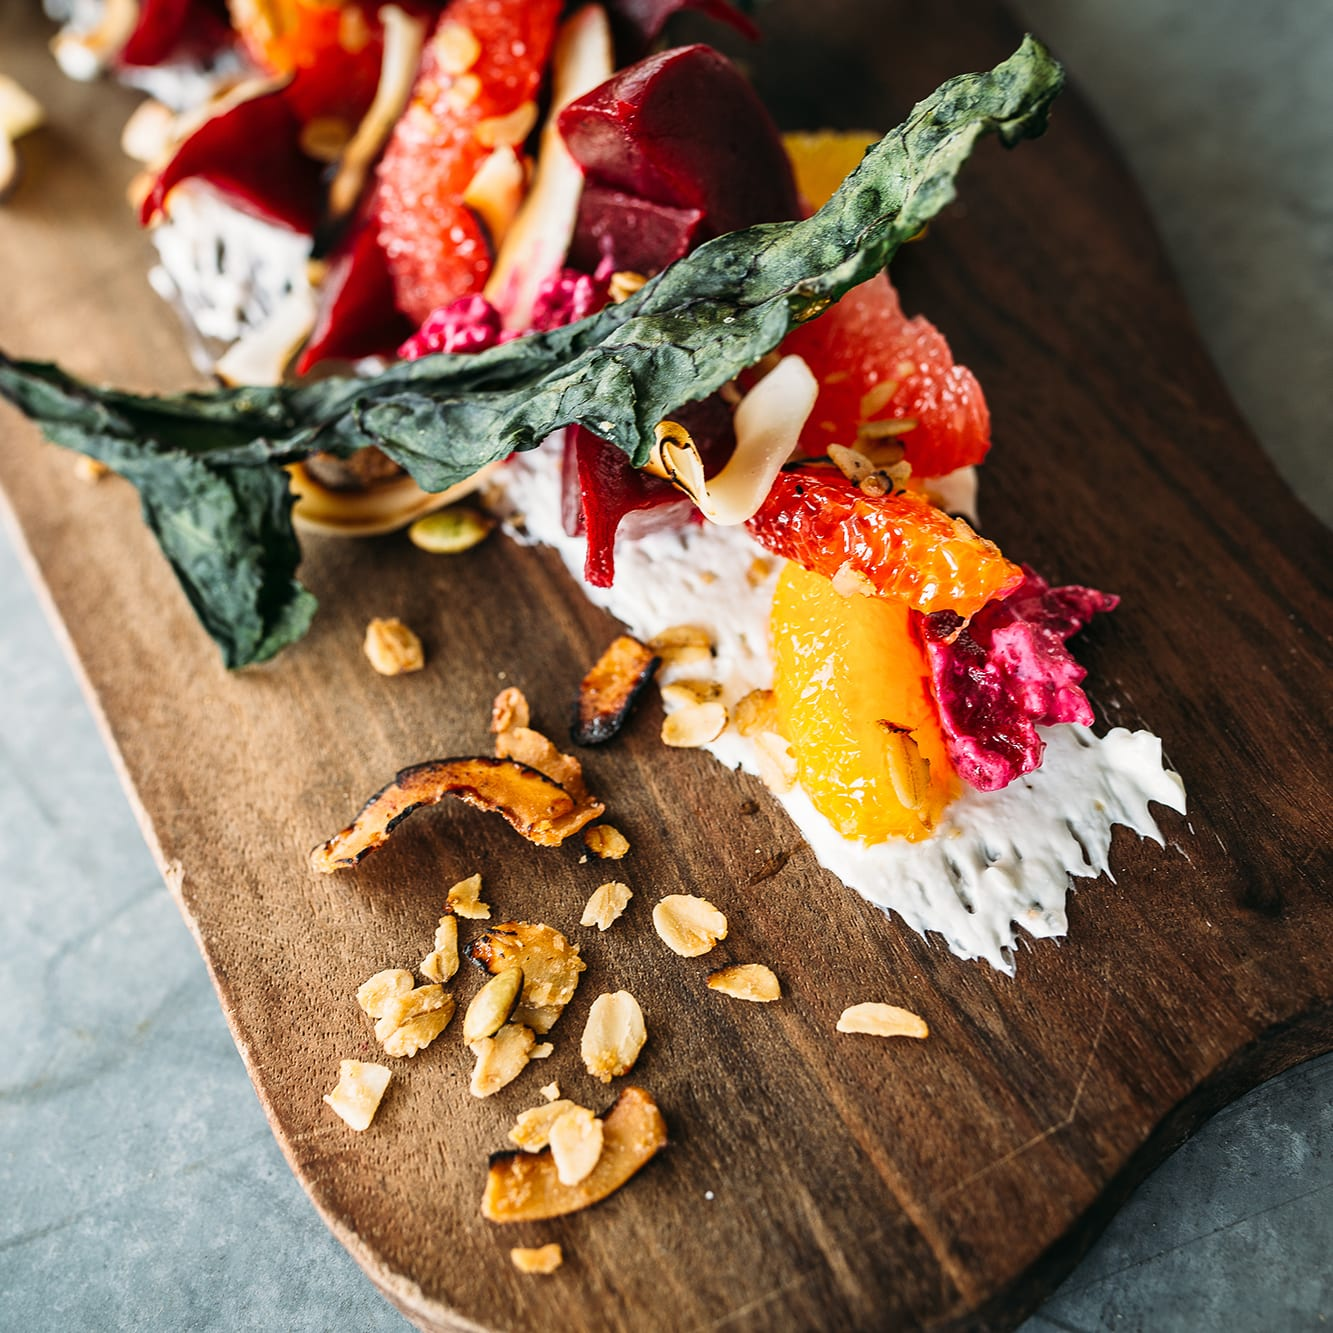 Roasted Beet Ambrosia, Farmstead Cheese, Texas Citrus, Burnt Coconut Granola